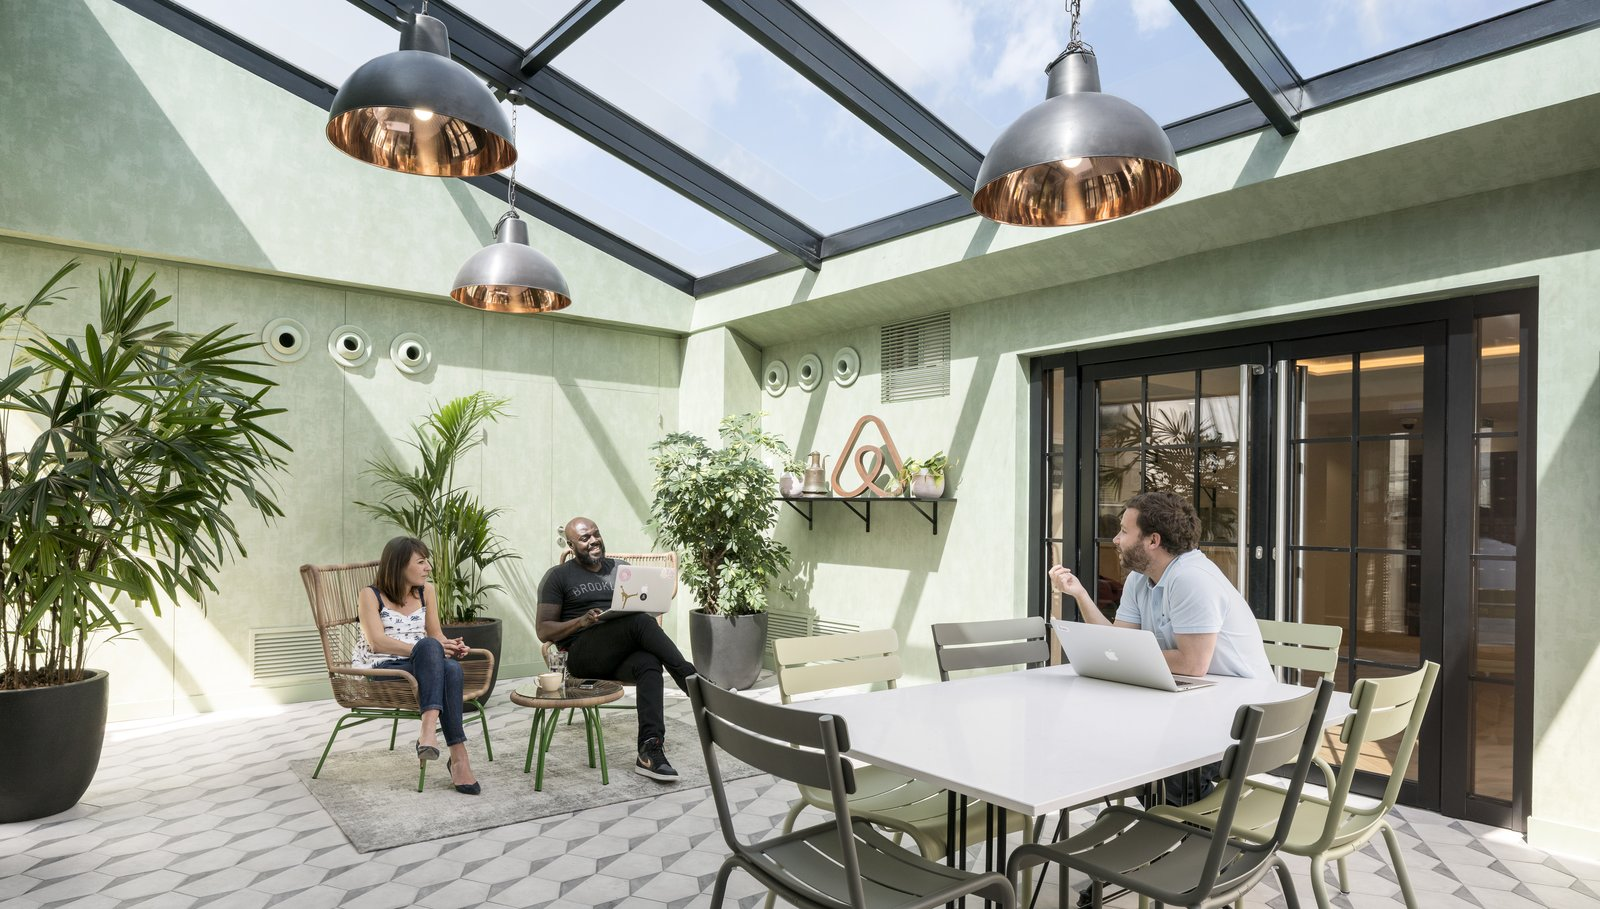 Take A Peek Inside Airbnb S New Loft Inspired Office Space In Paris